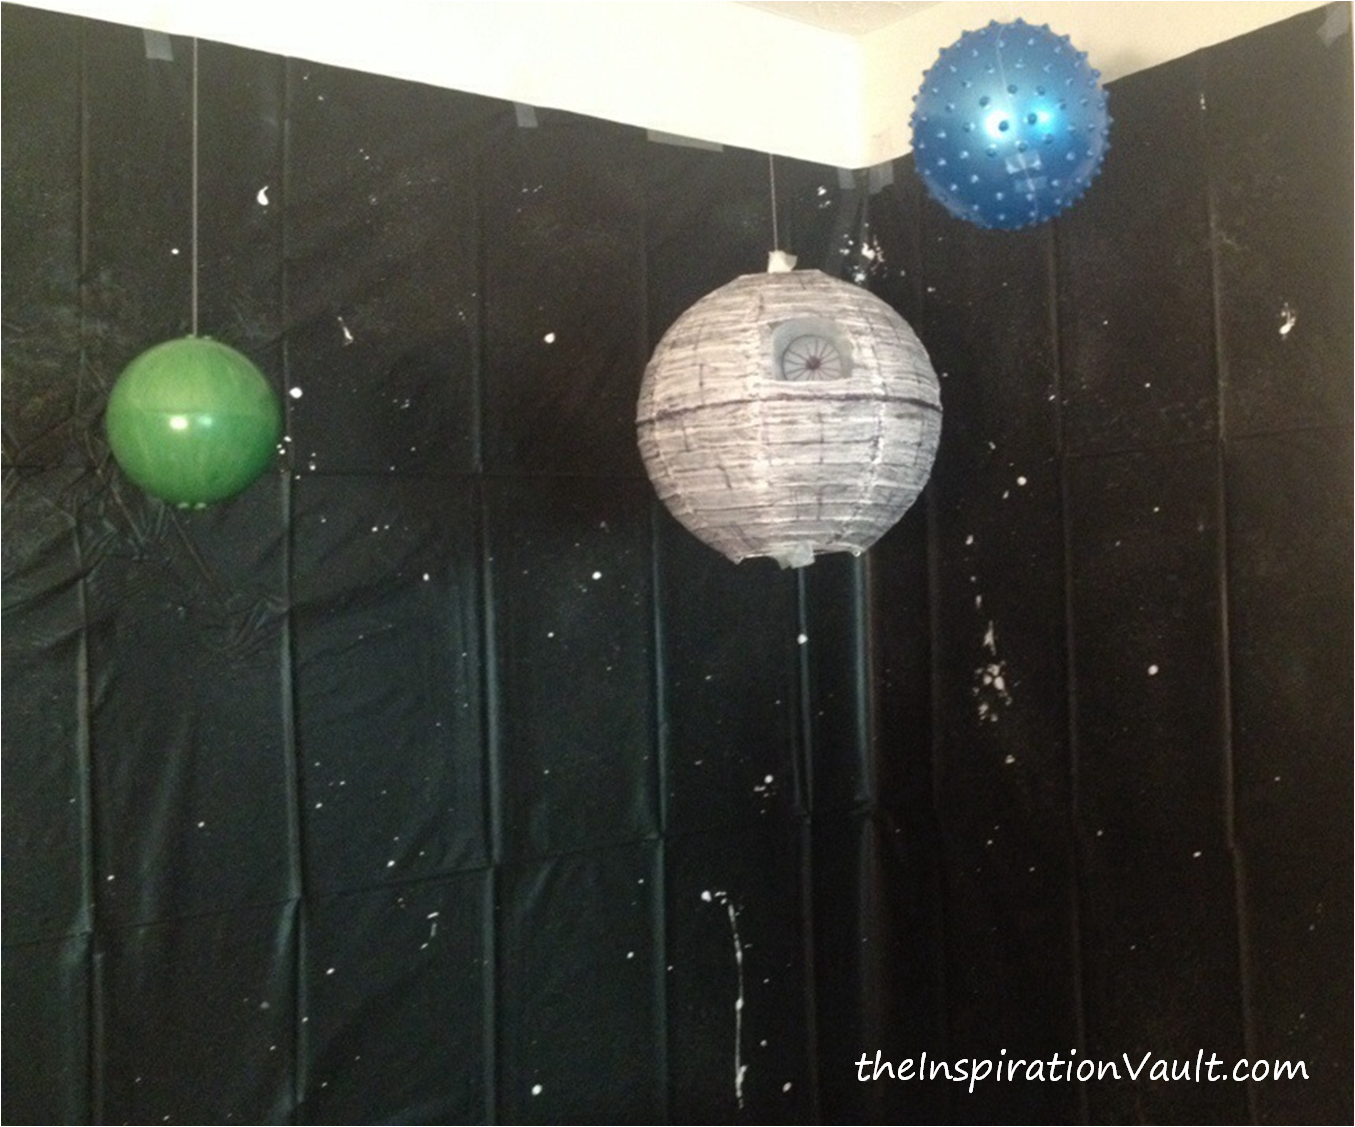 Star Wars Party Decorations Inspovault Forcefriday Starwars